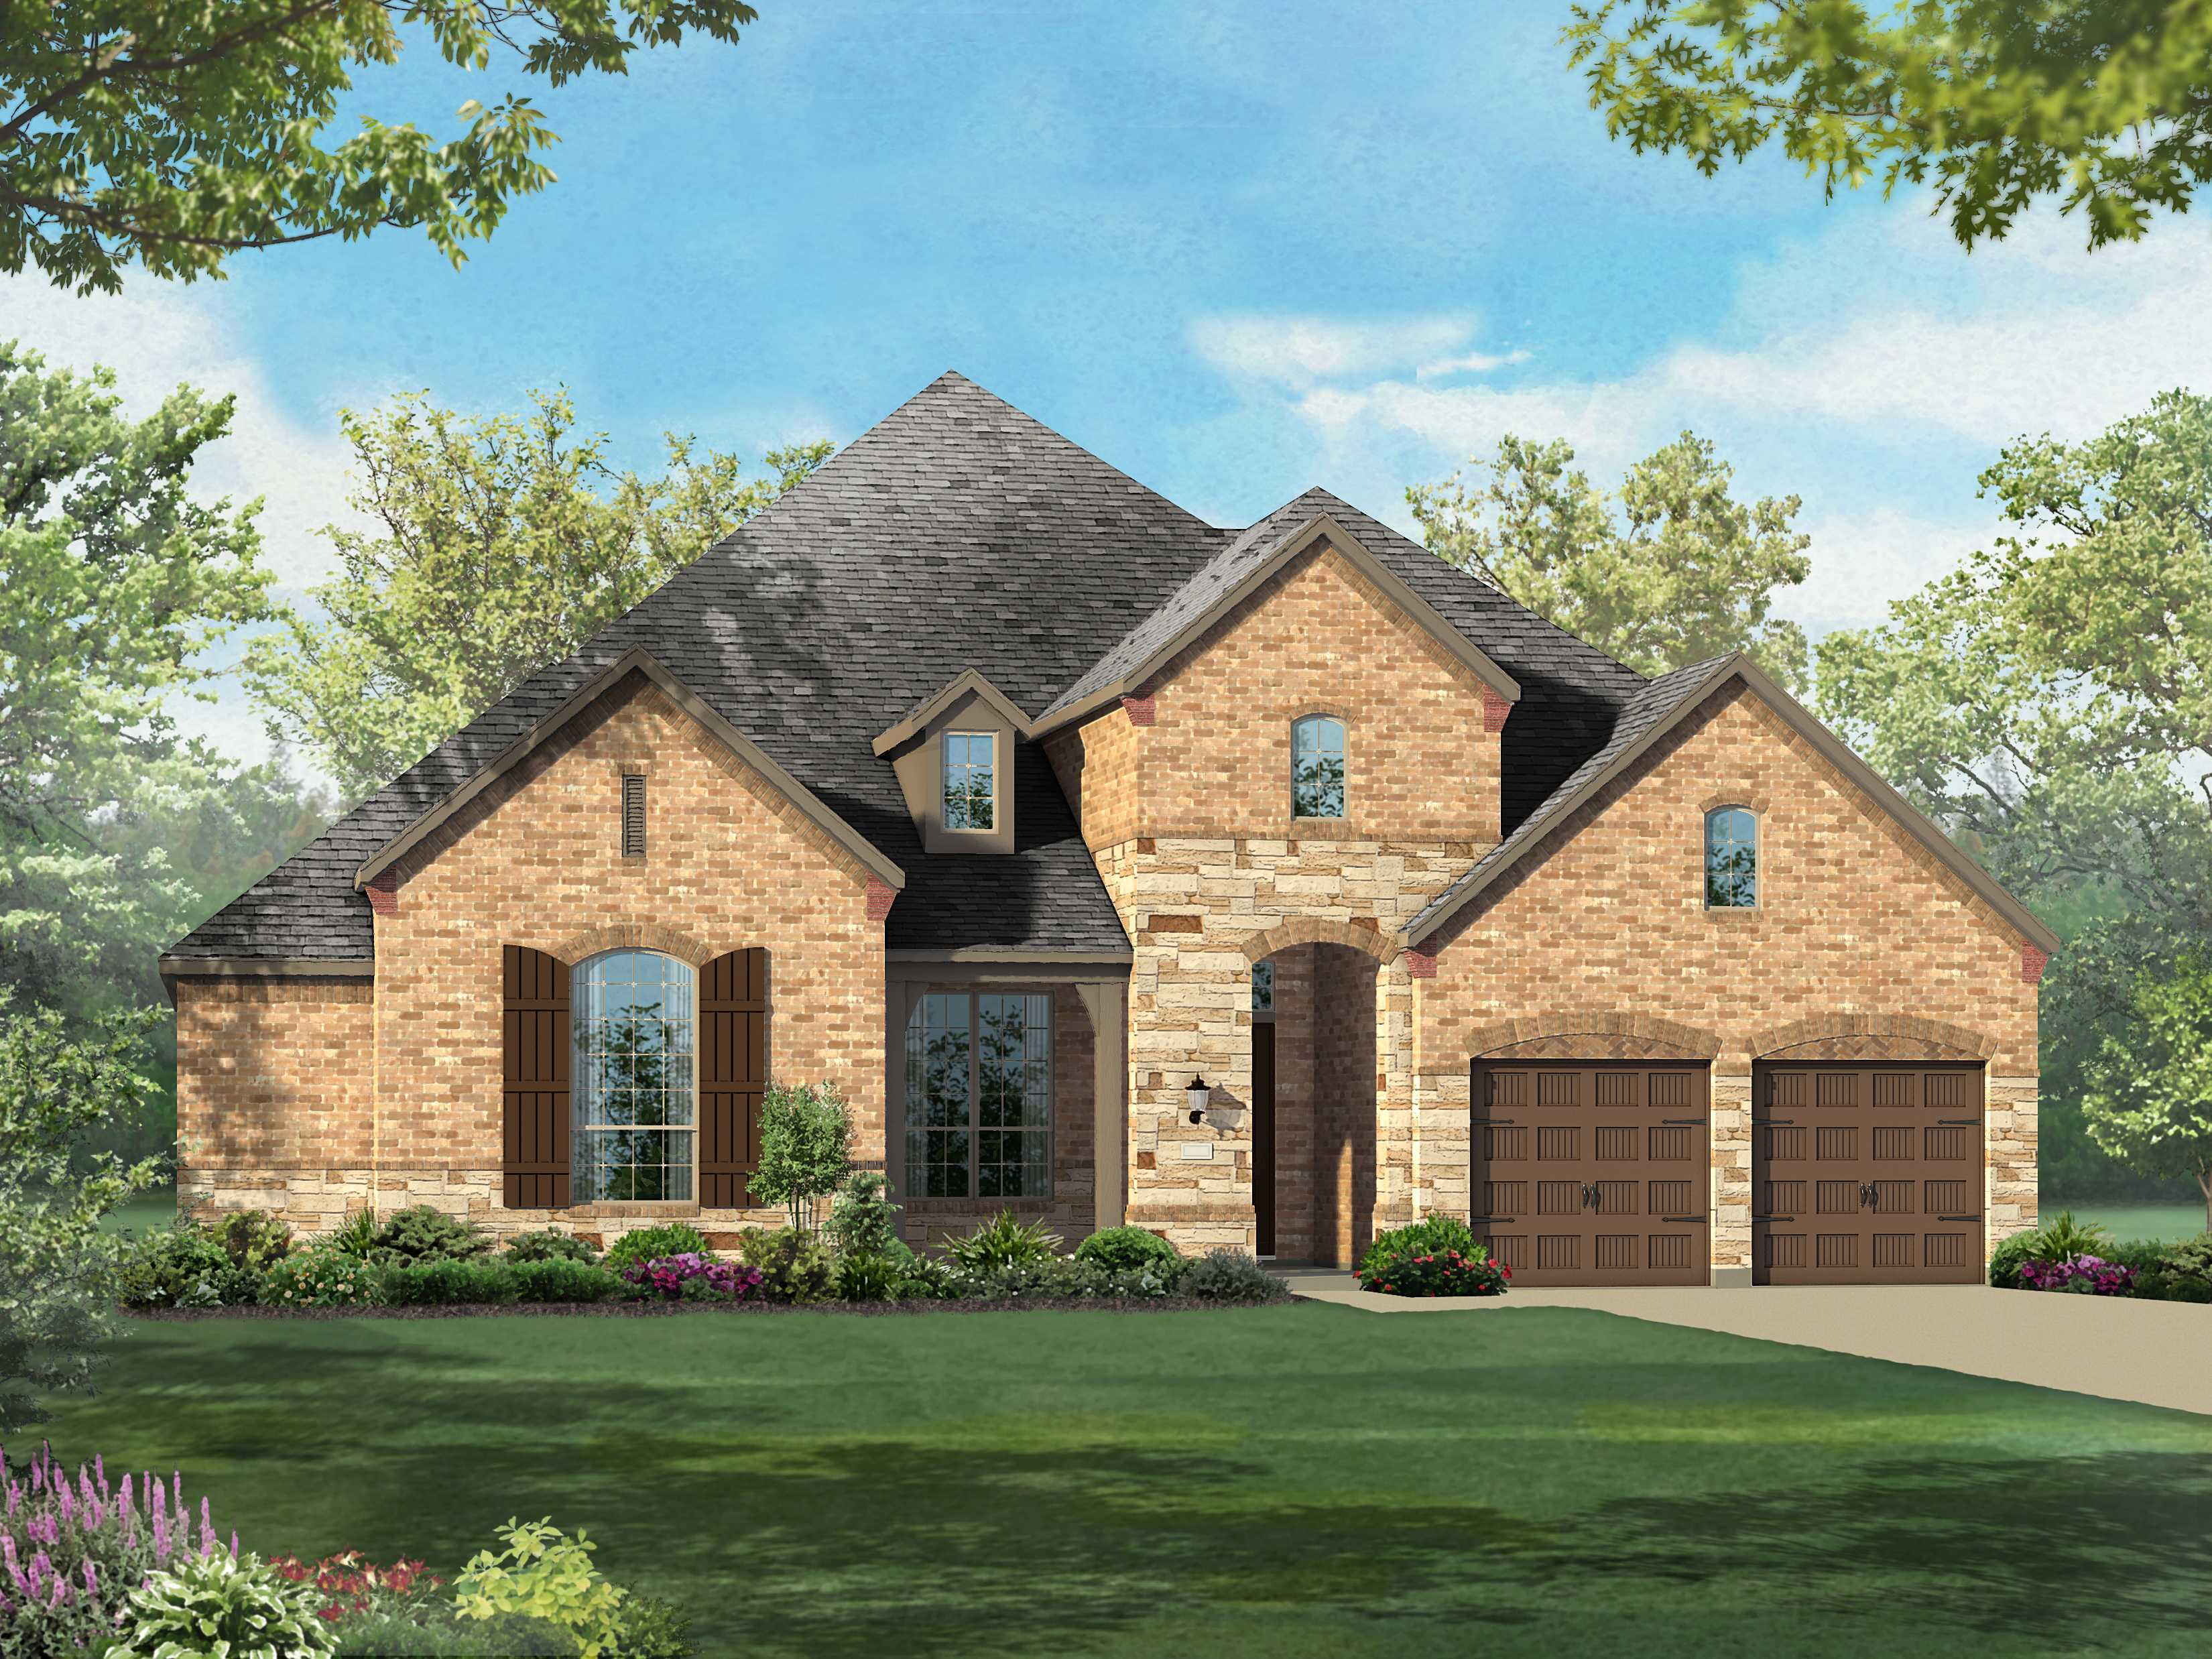 Single Family for Sale at Lakeside At Tessera On Lake Travis 80s - Plan 292 8012 Turning Leaf Circle Lago Vista, Texas 78645 United States